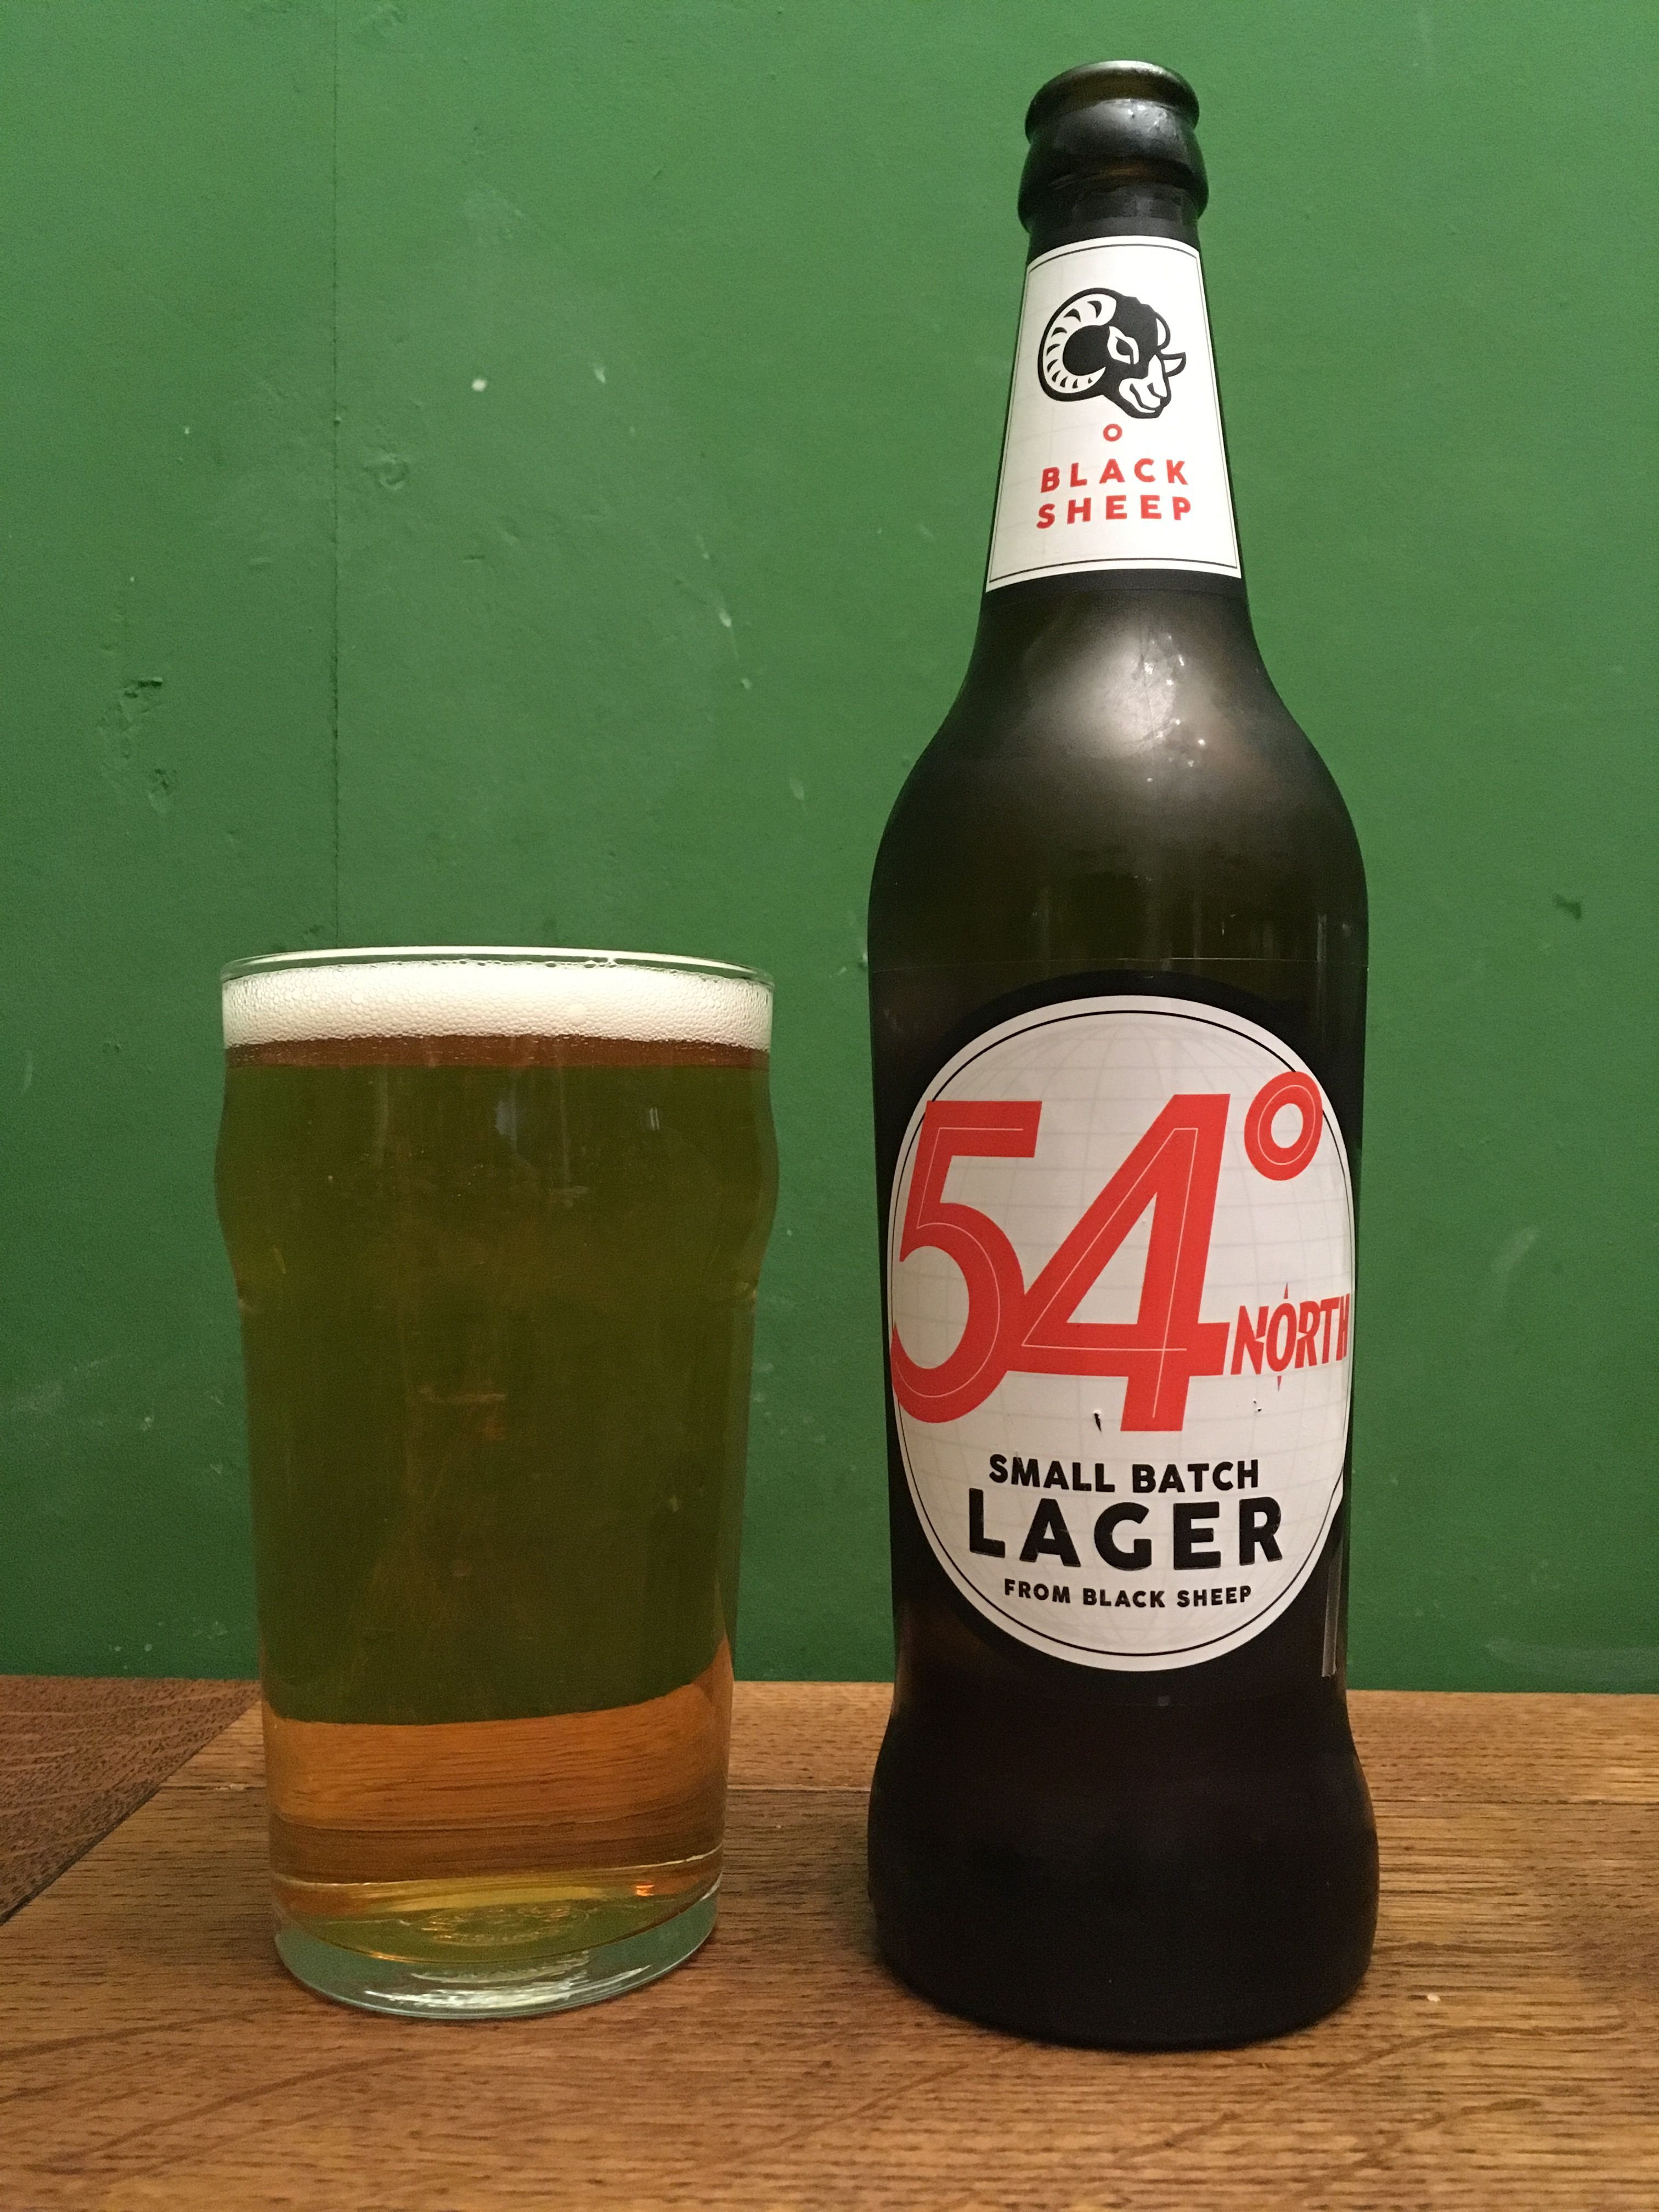 54 Degrees North By Black Sheep Brewery Inm Uk Very Light Beer And Quite Sweet Almost Like A Shandy Very Easy To Drink